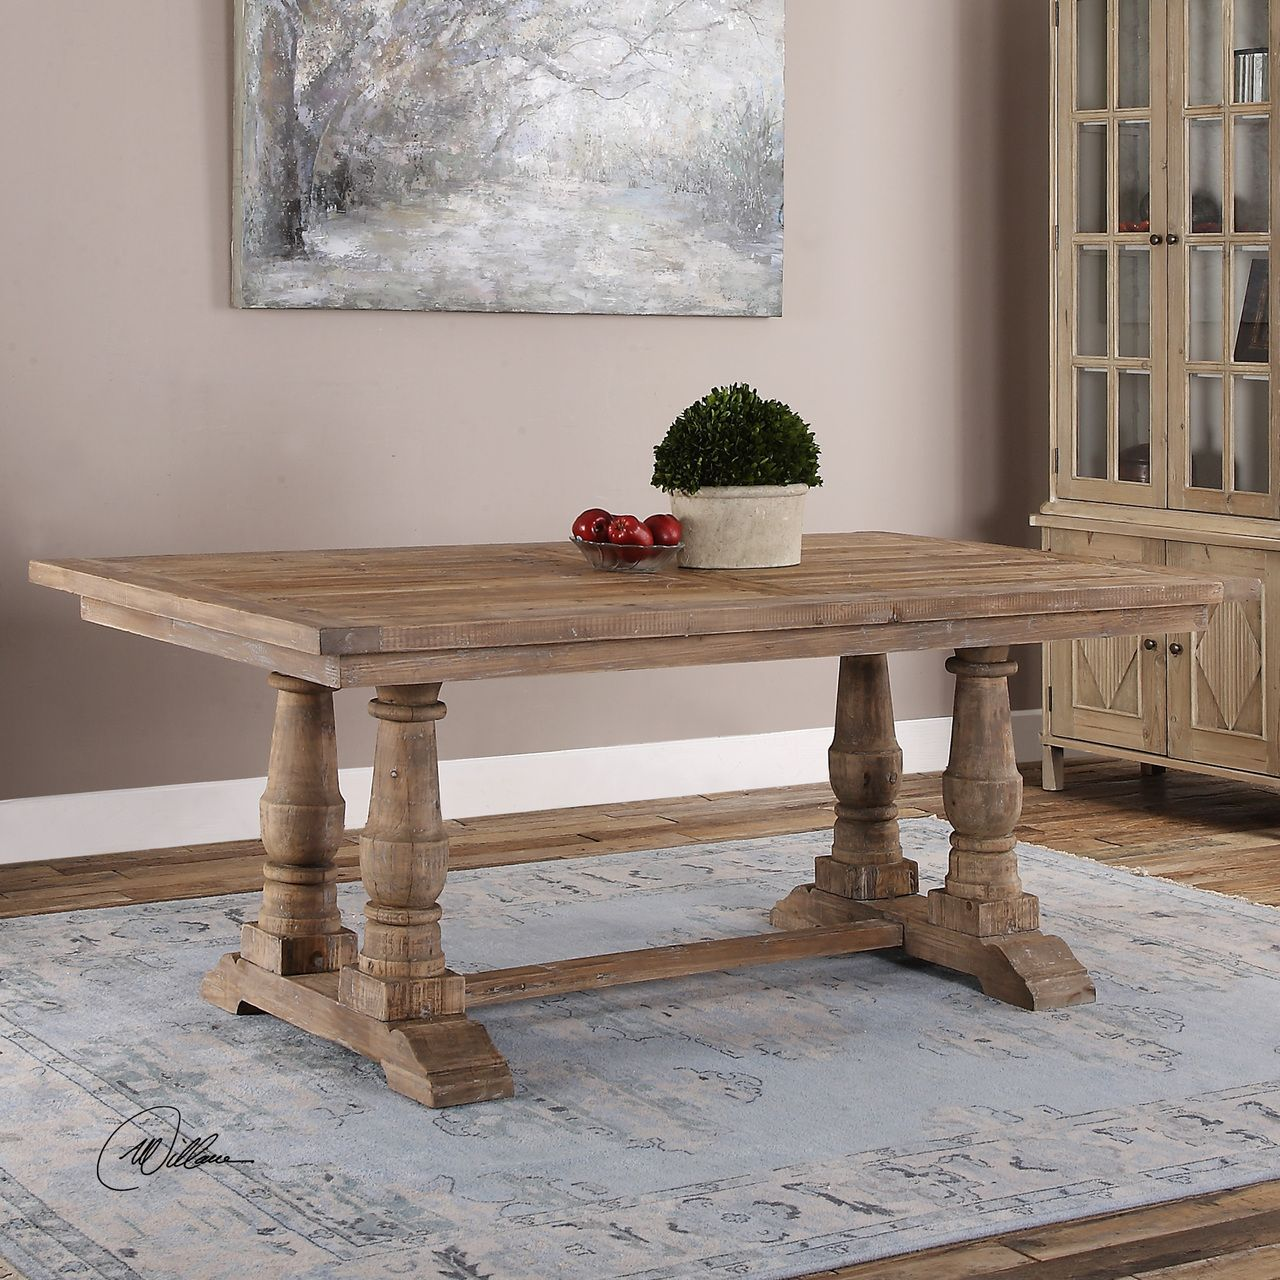 Salvaged Wood Double Trestle Dining Table Zin Home Kitchen - Double trestle dining table